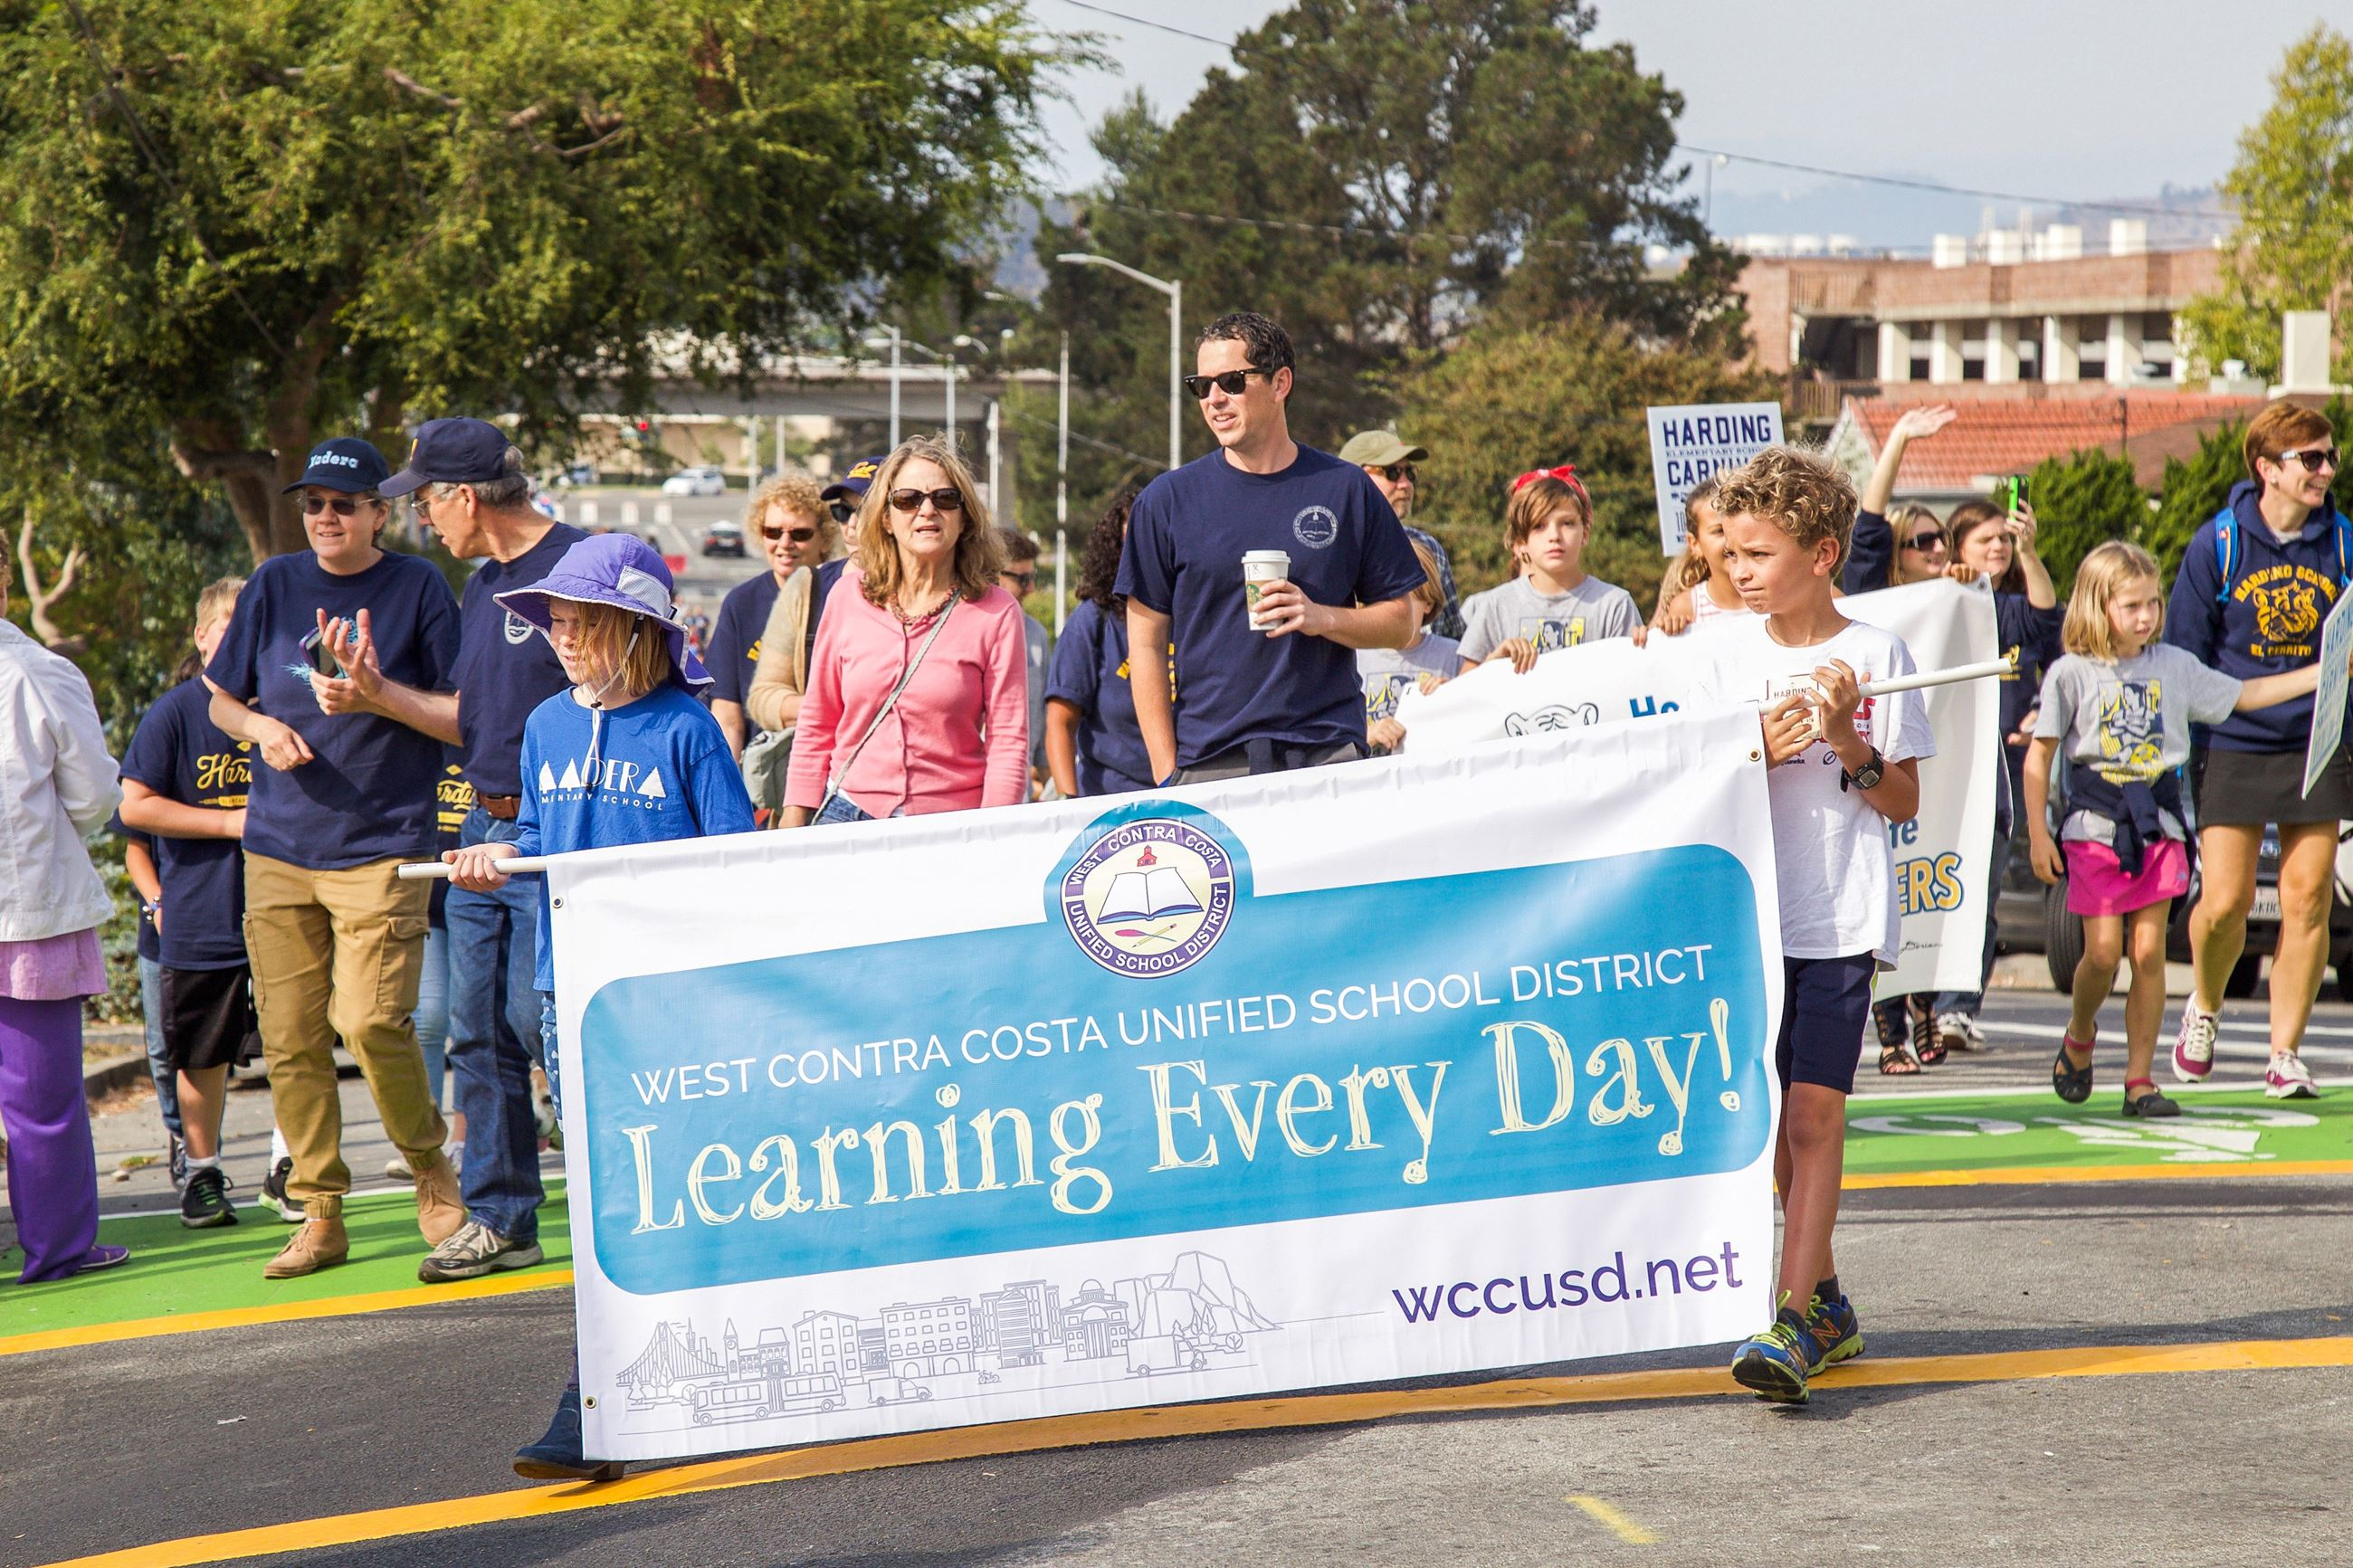 251 WCCUSD in Parade - Photo by Marin Stuart